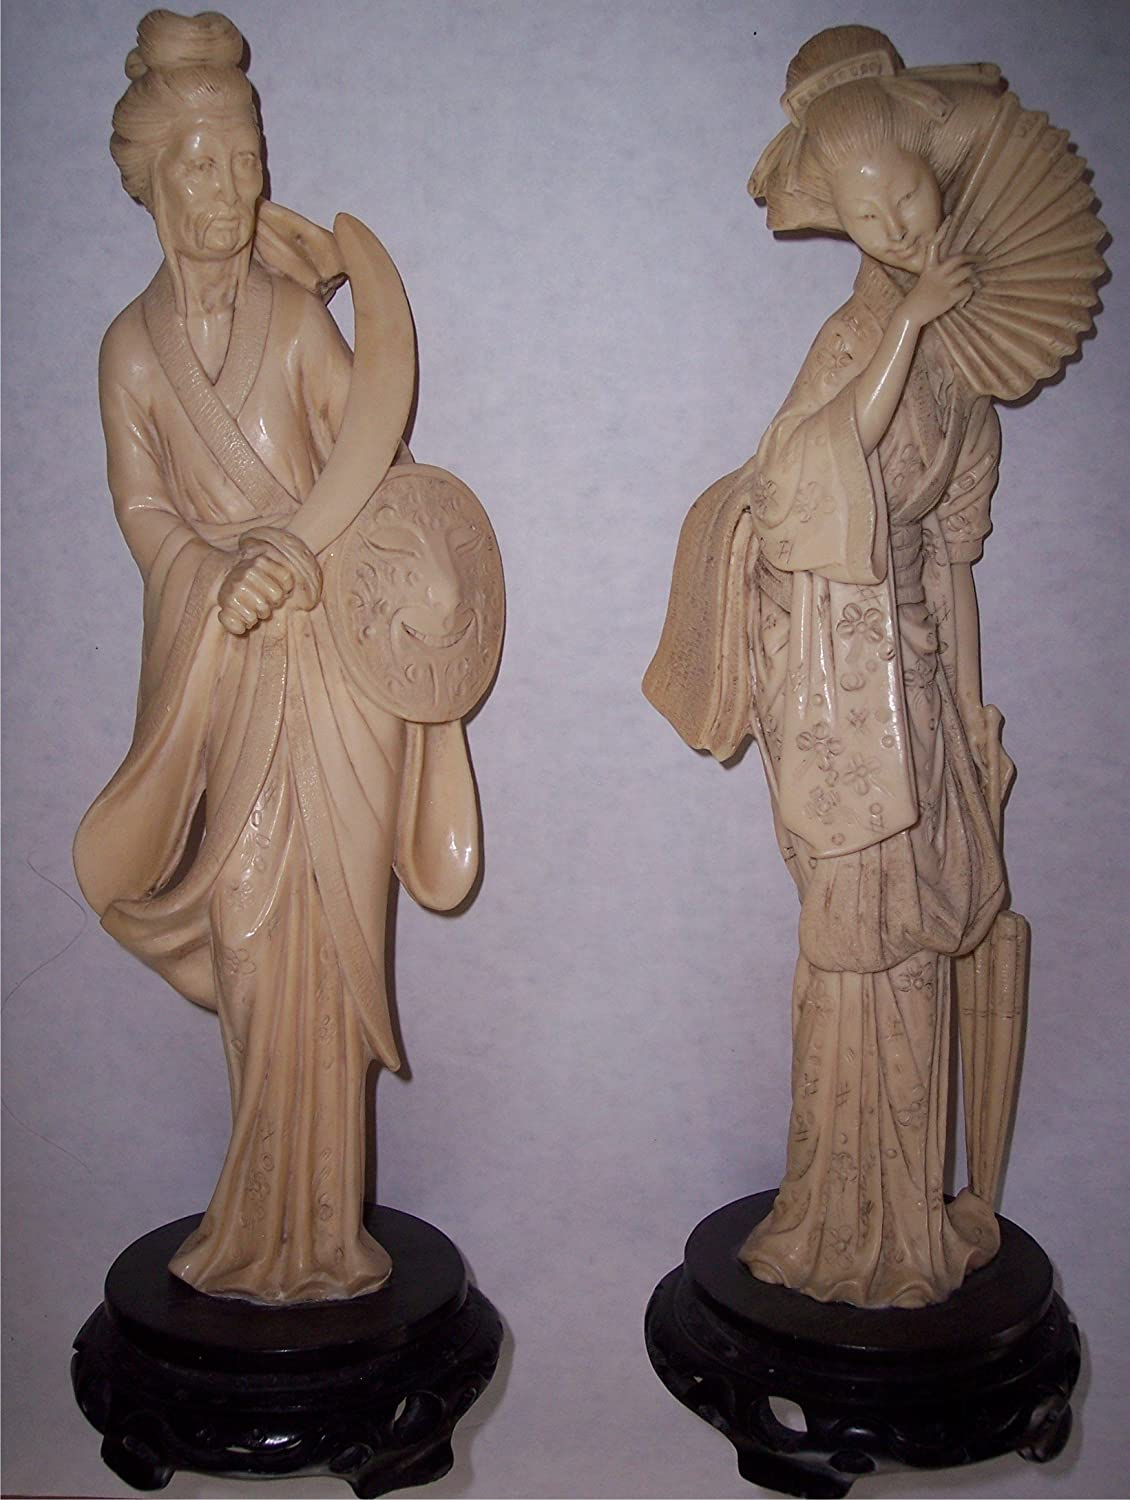 Amazon Com Oriental Statue Figurines Set Of 2 Geisha Samurai 13 In Tall Carved Ivory Simulated Faux Asian Chinese Japanese Sculpture Home Kitchen